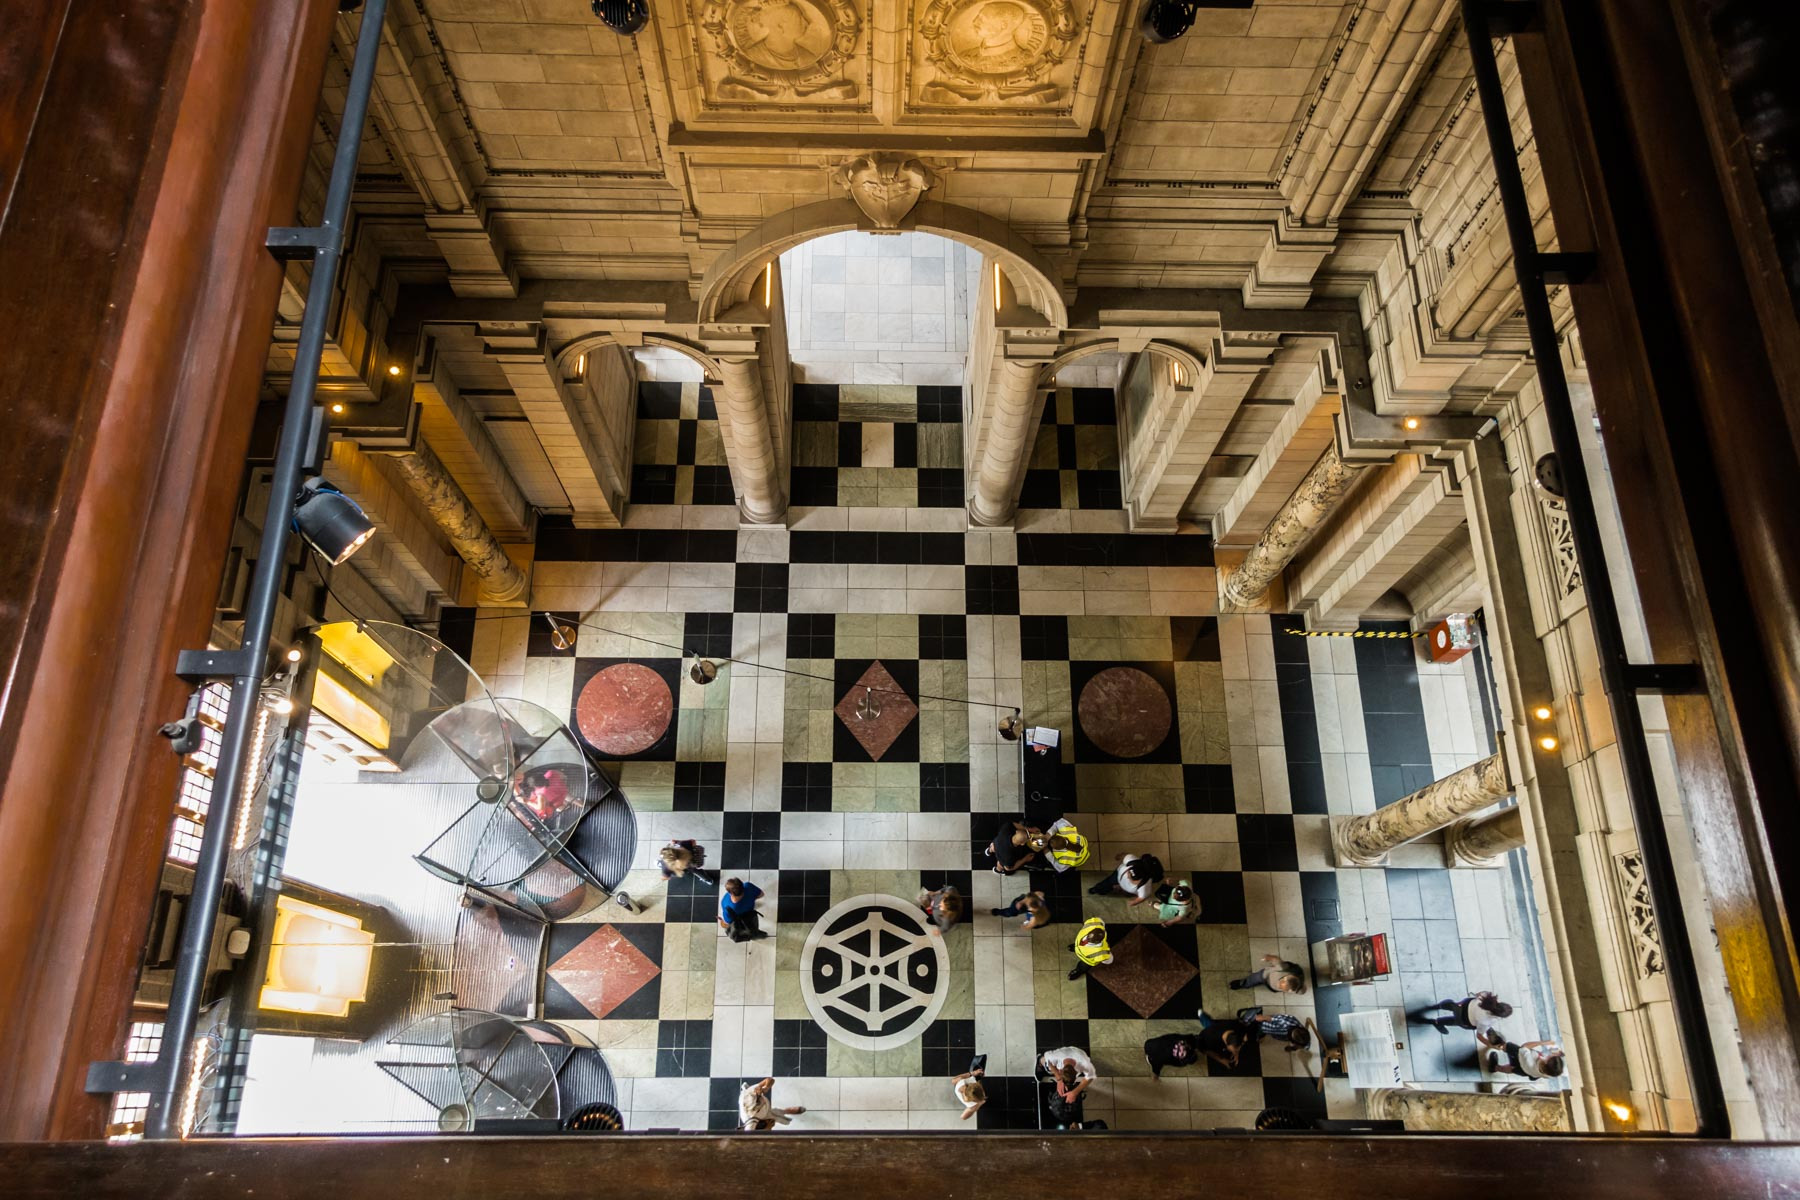 v_and_a_london_201706-45